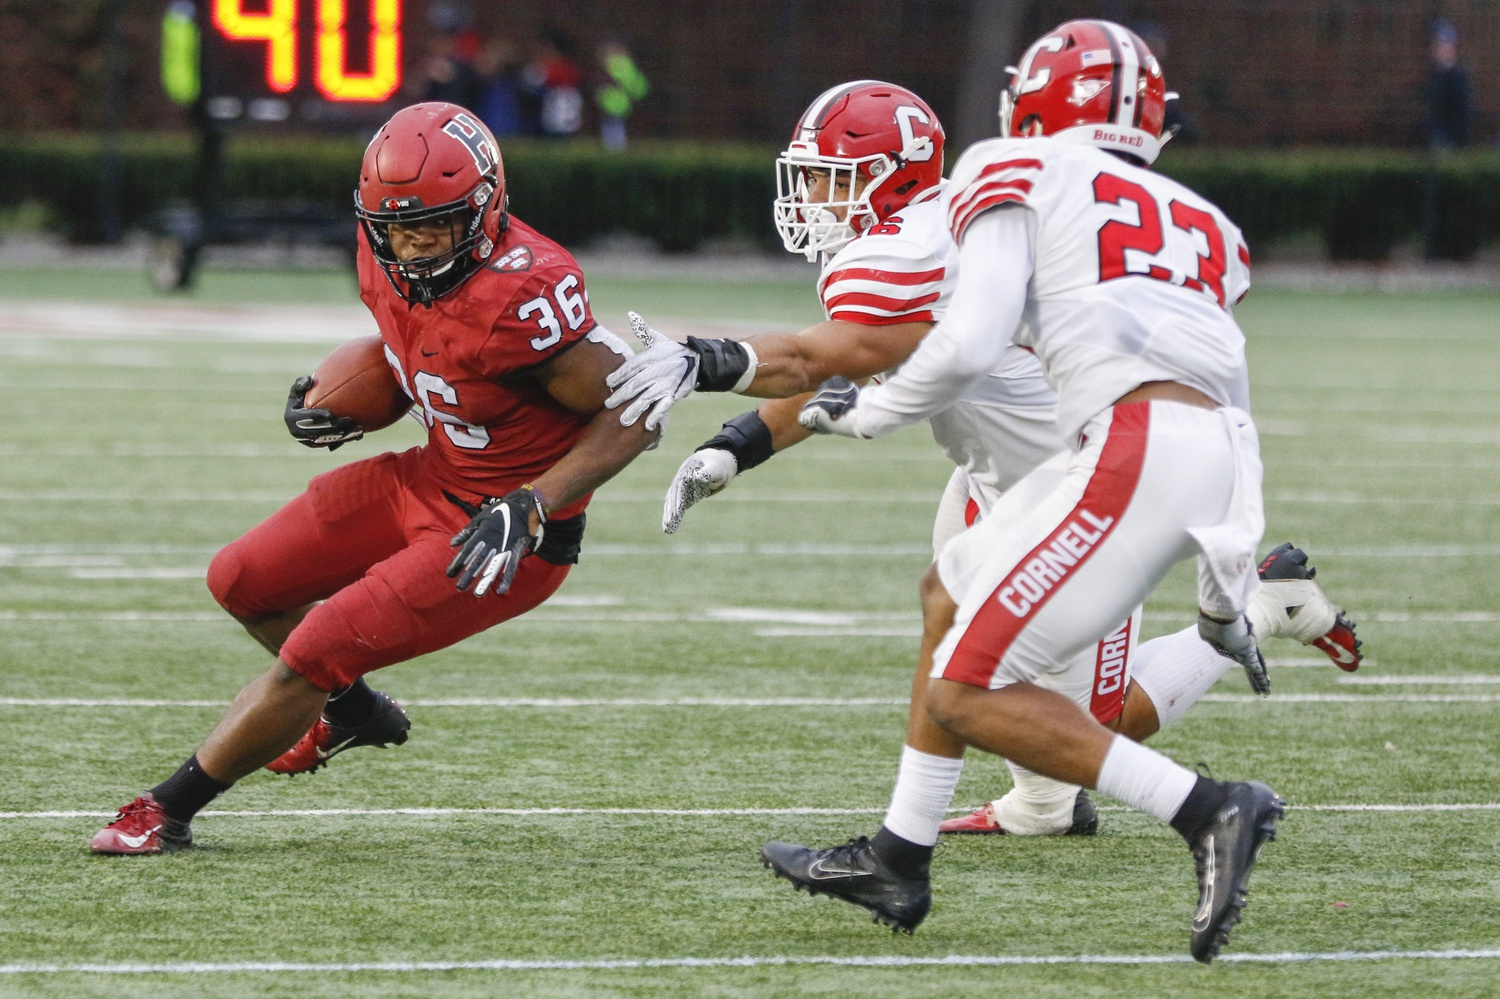 Junior running back Devin Darrington makes a cut against Cornell last week. The third-year leads the team in ground-game production with 371 yards.